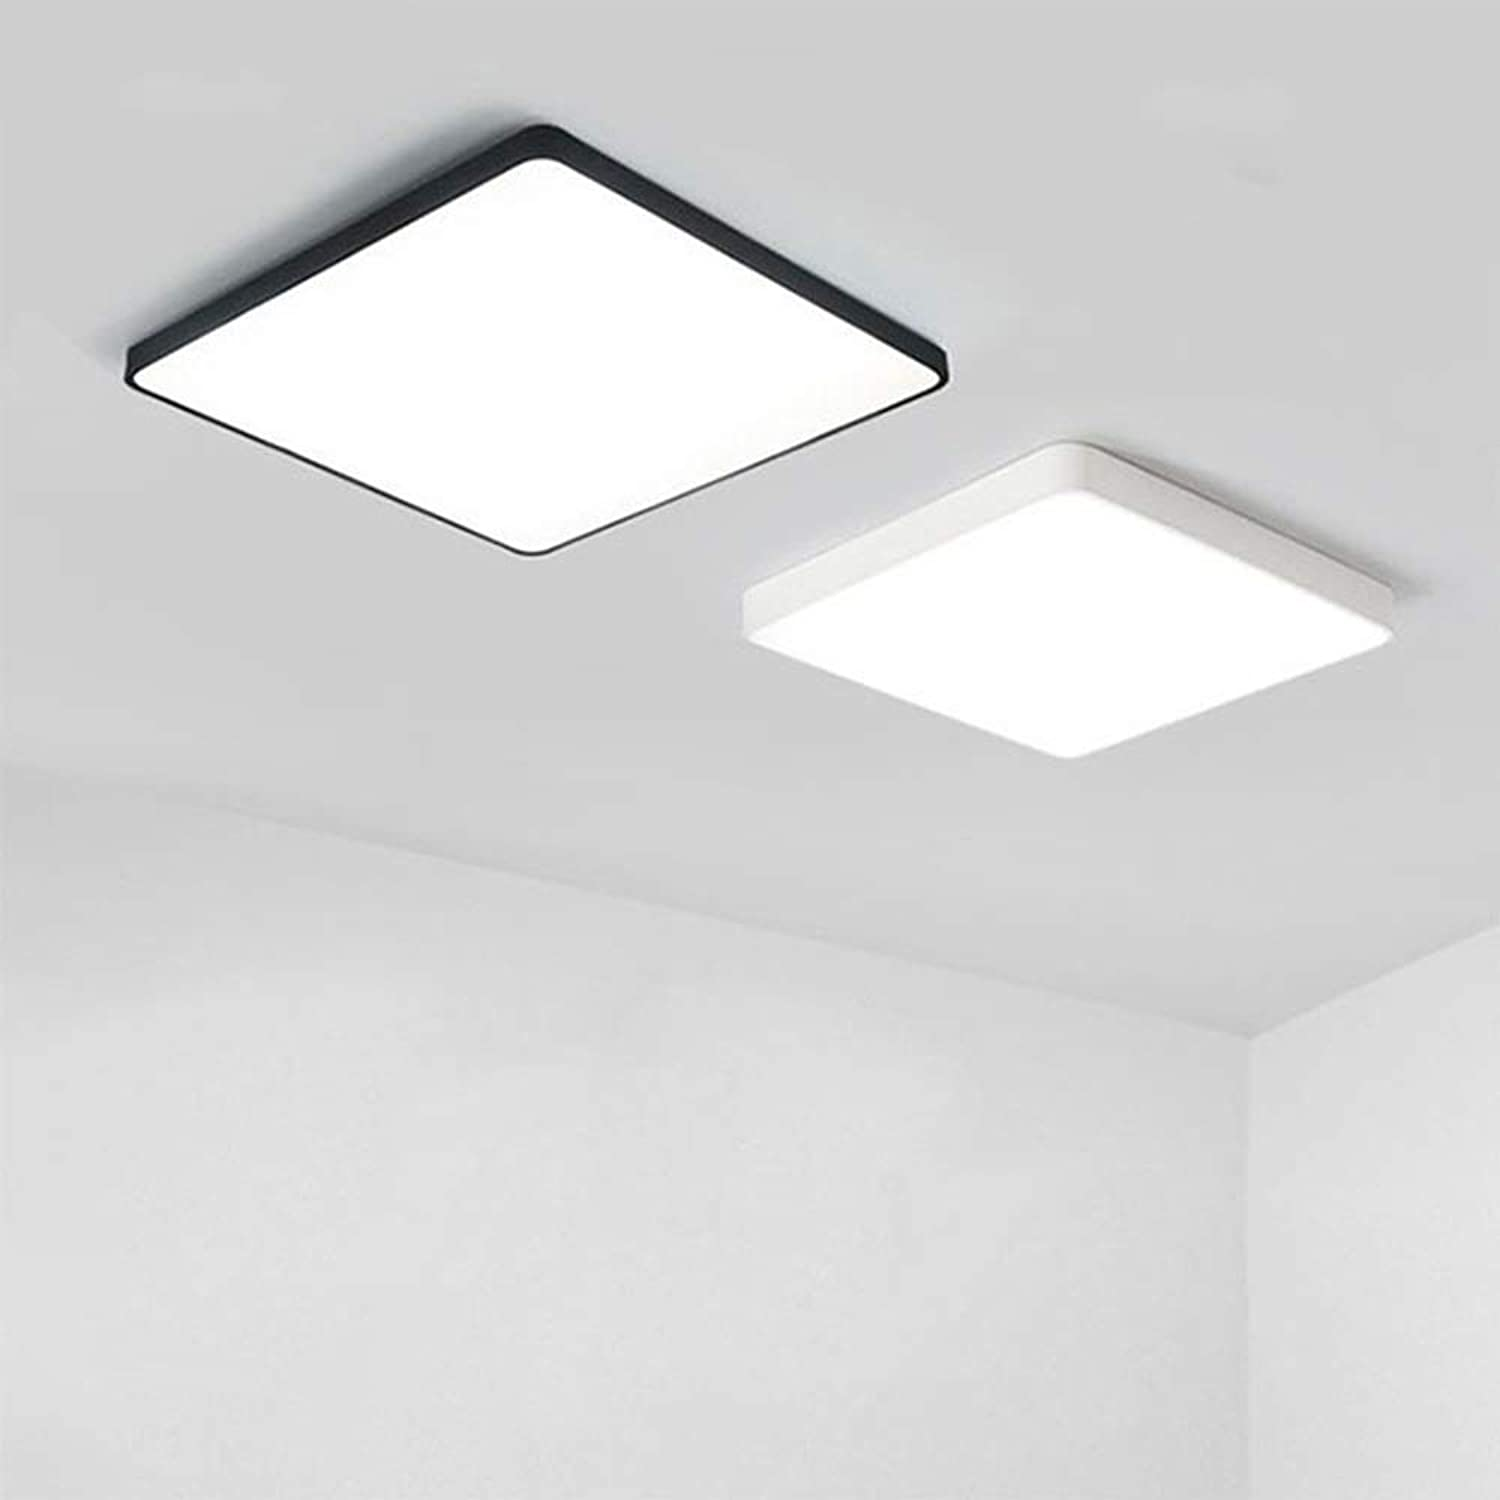 Square Flush Mounted LED Ceiling Light,Led UltraThin Ceiling lamp Creative Home Living Room Bedroom Balcony Aisle Restaurant Bathroom, White Light